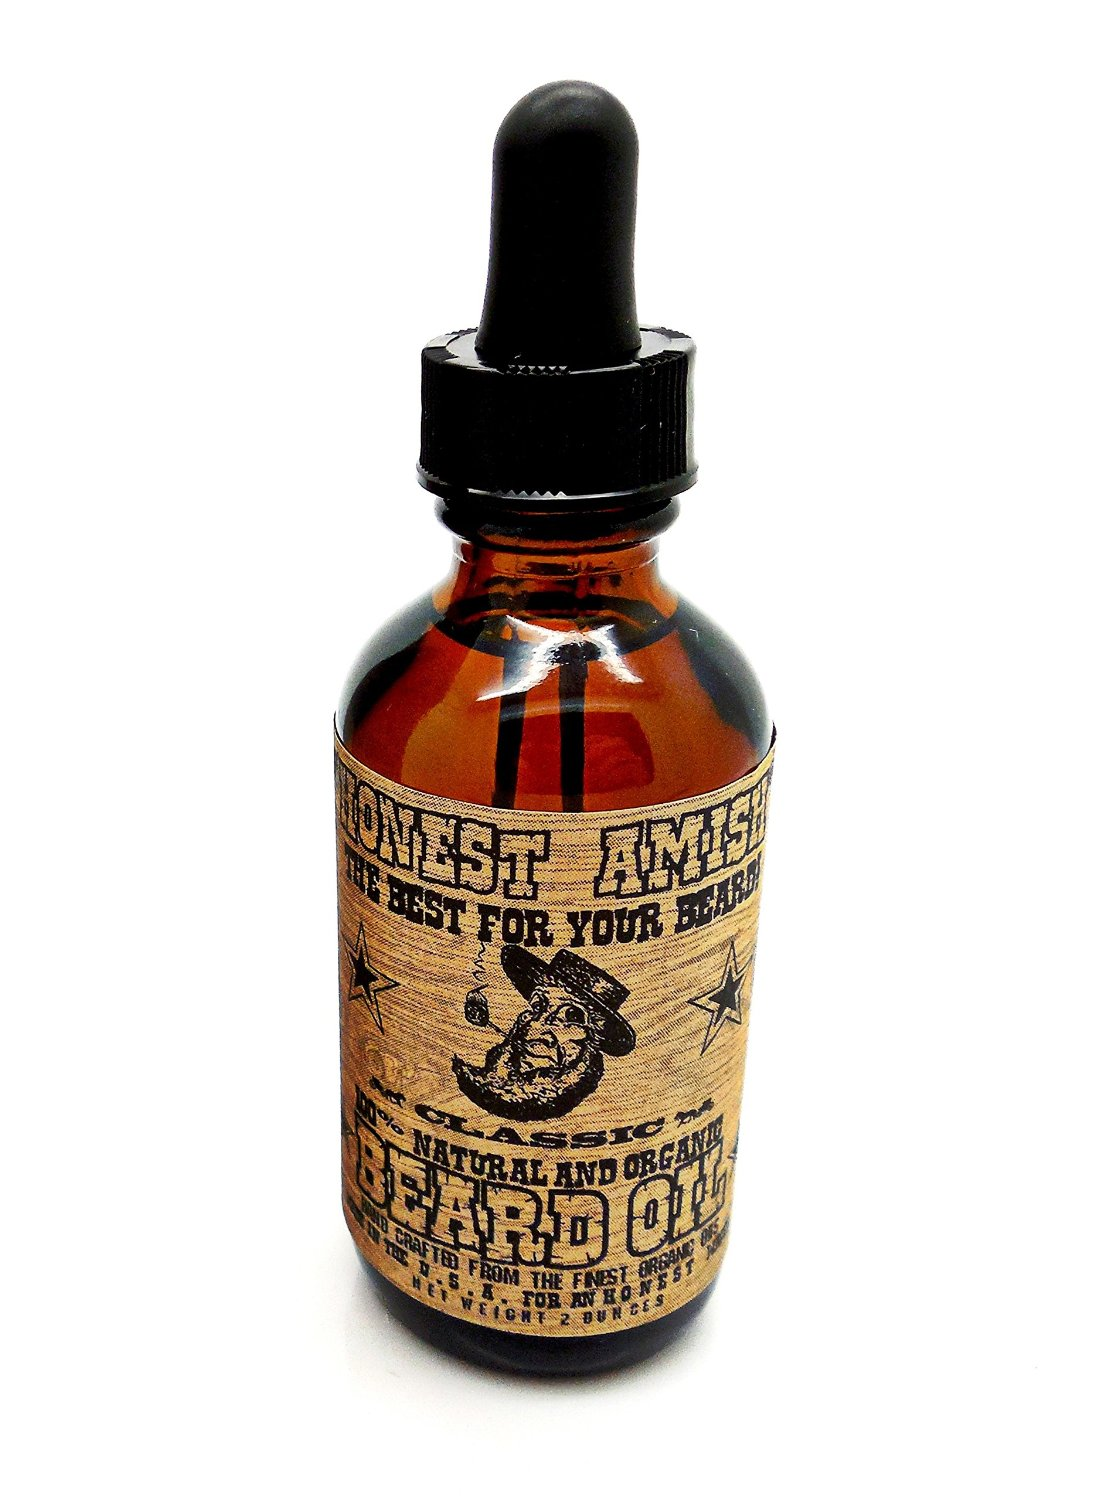 Honest Amish Classic Beard Oil – All Natural, Organic and Vegan, Handcrafted in USA